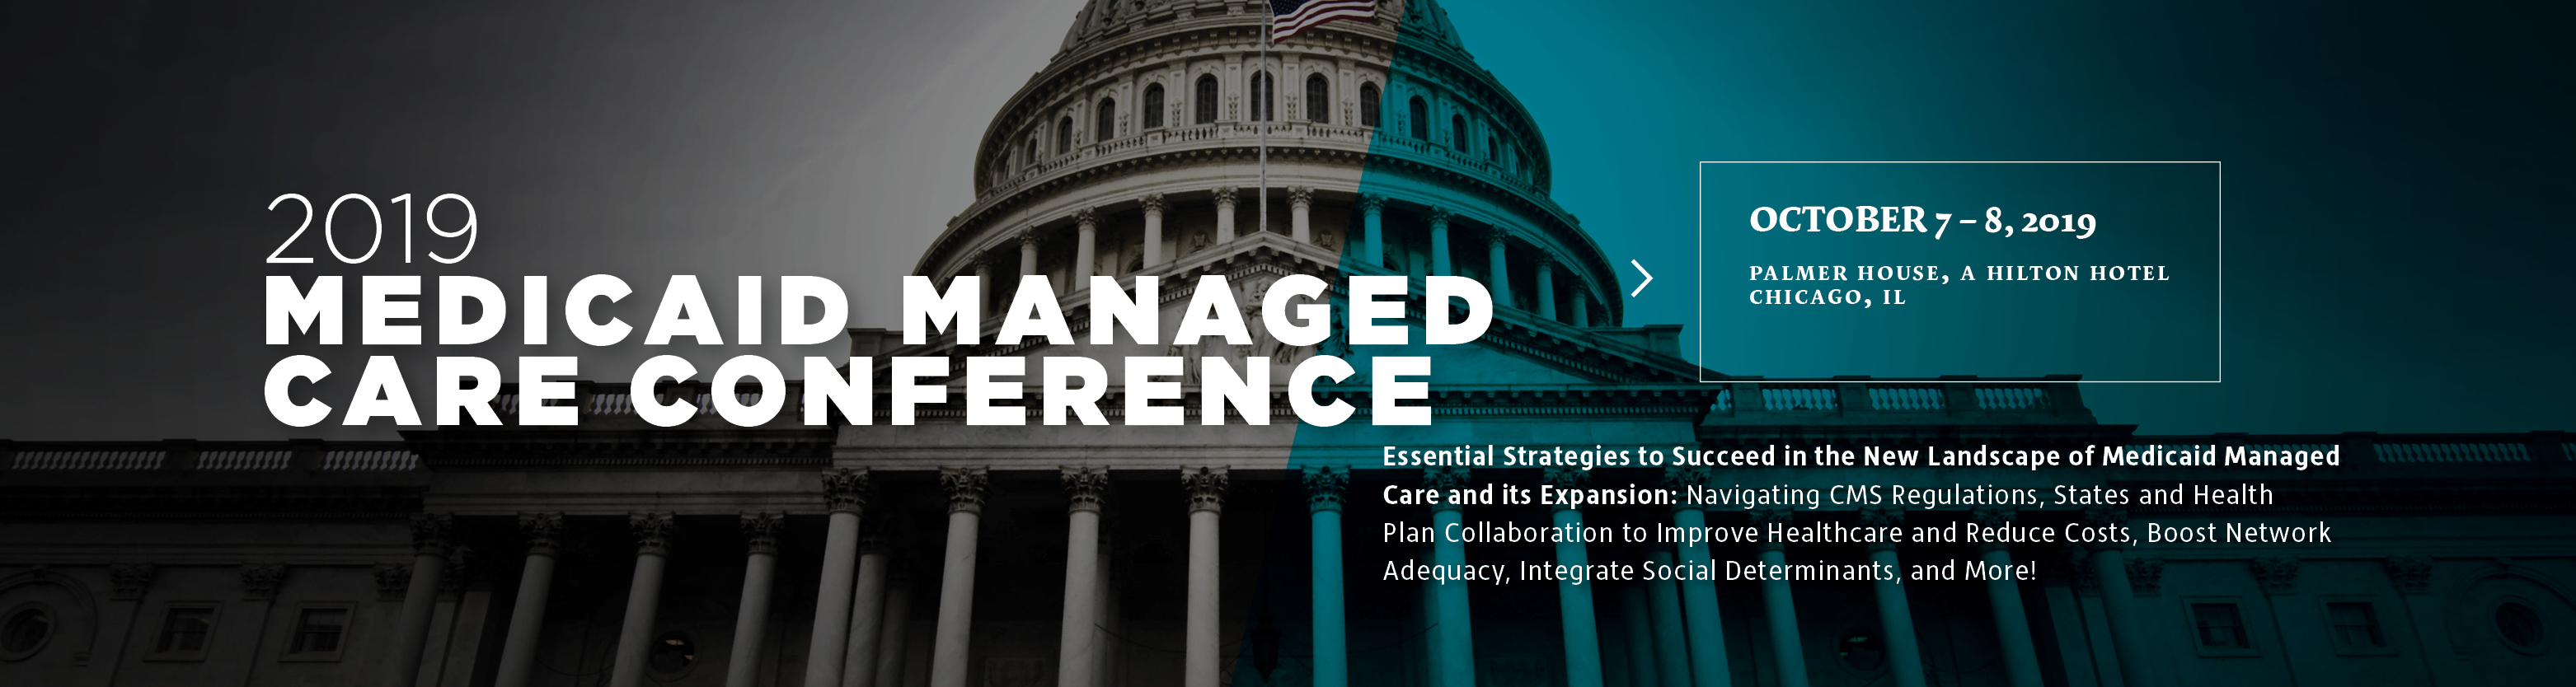 2019 Medicaid Managed Care Conference